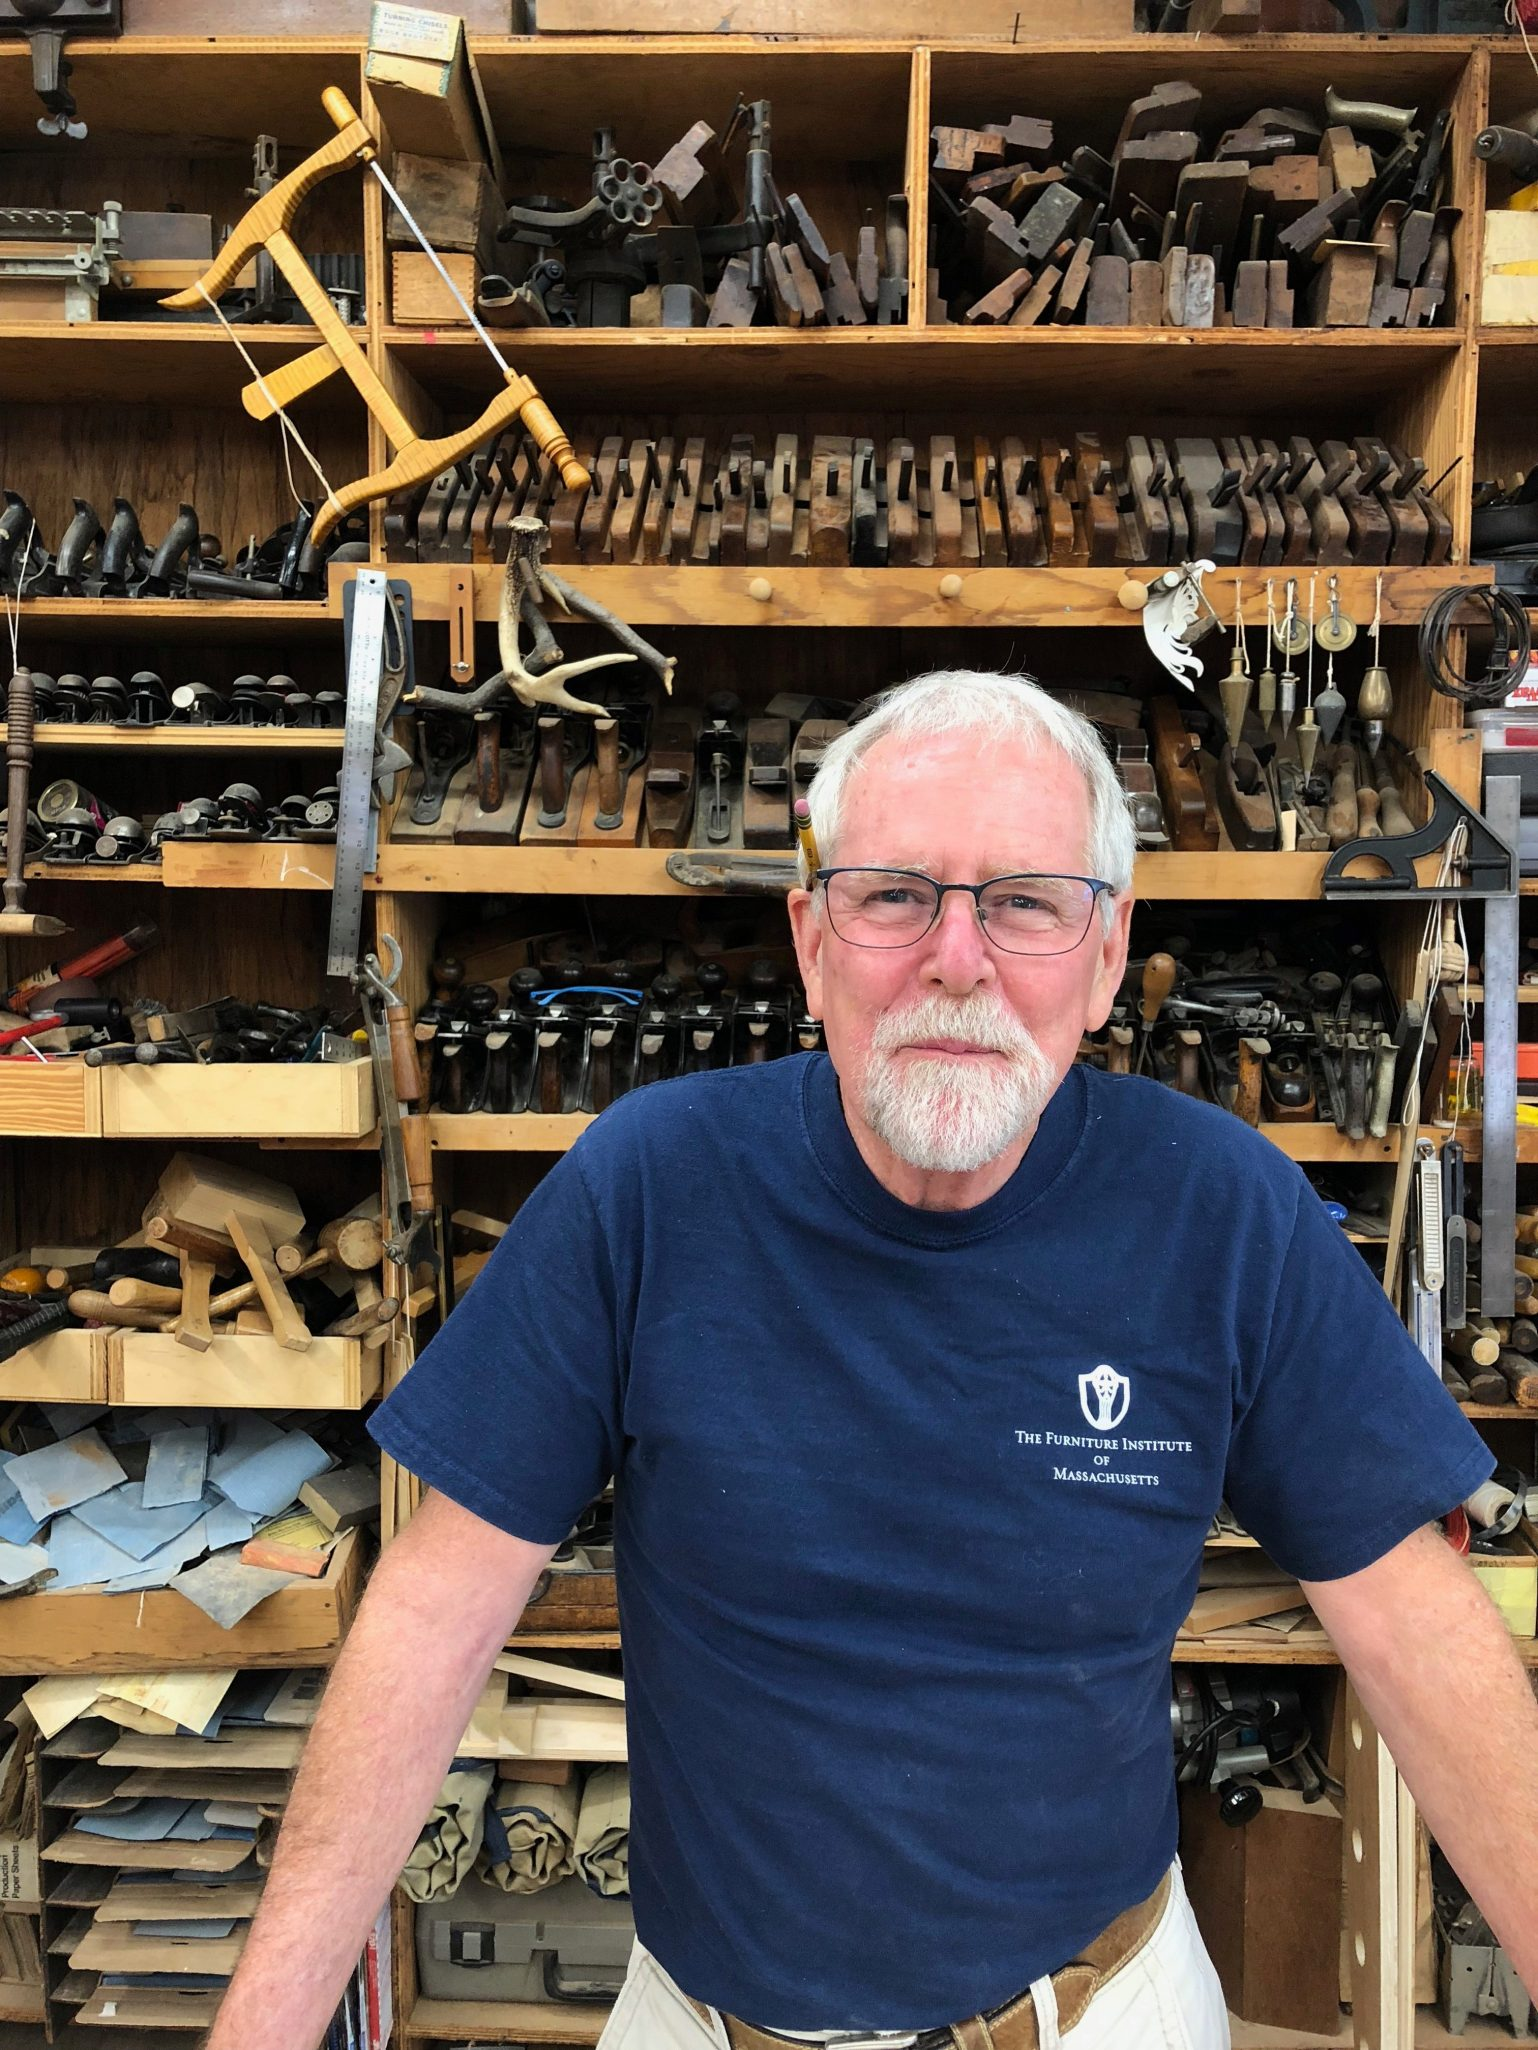 The Art Of Woodworking The Life Work Of Essex County Furniture